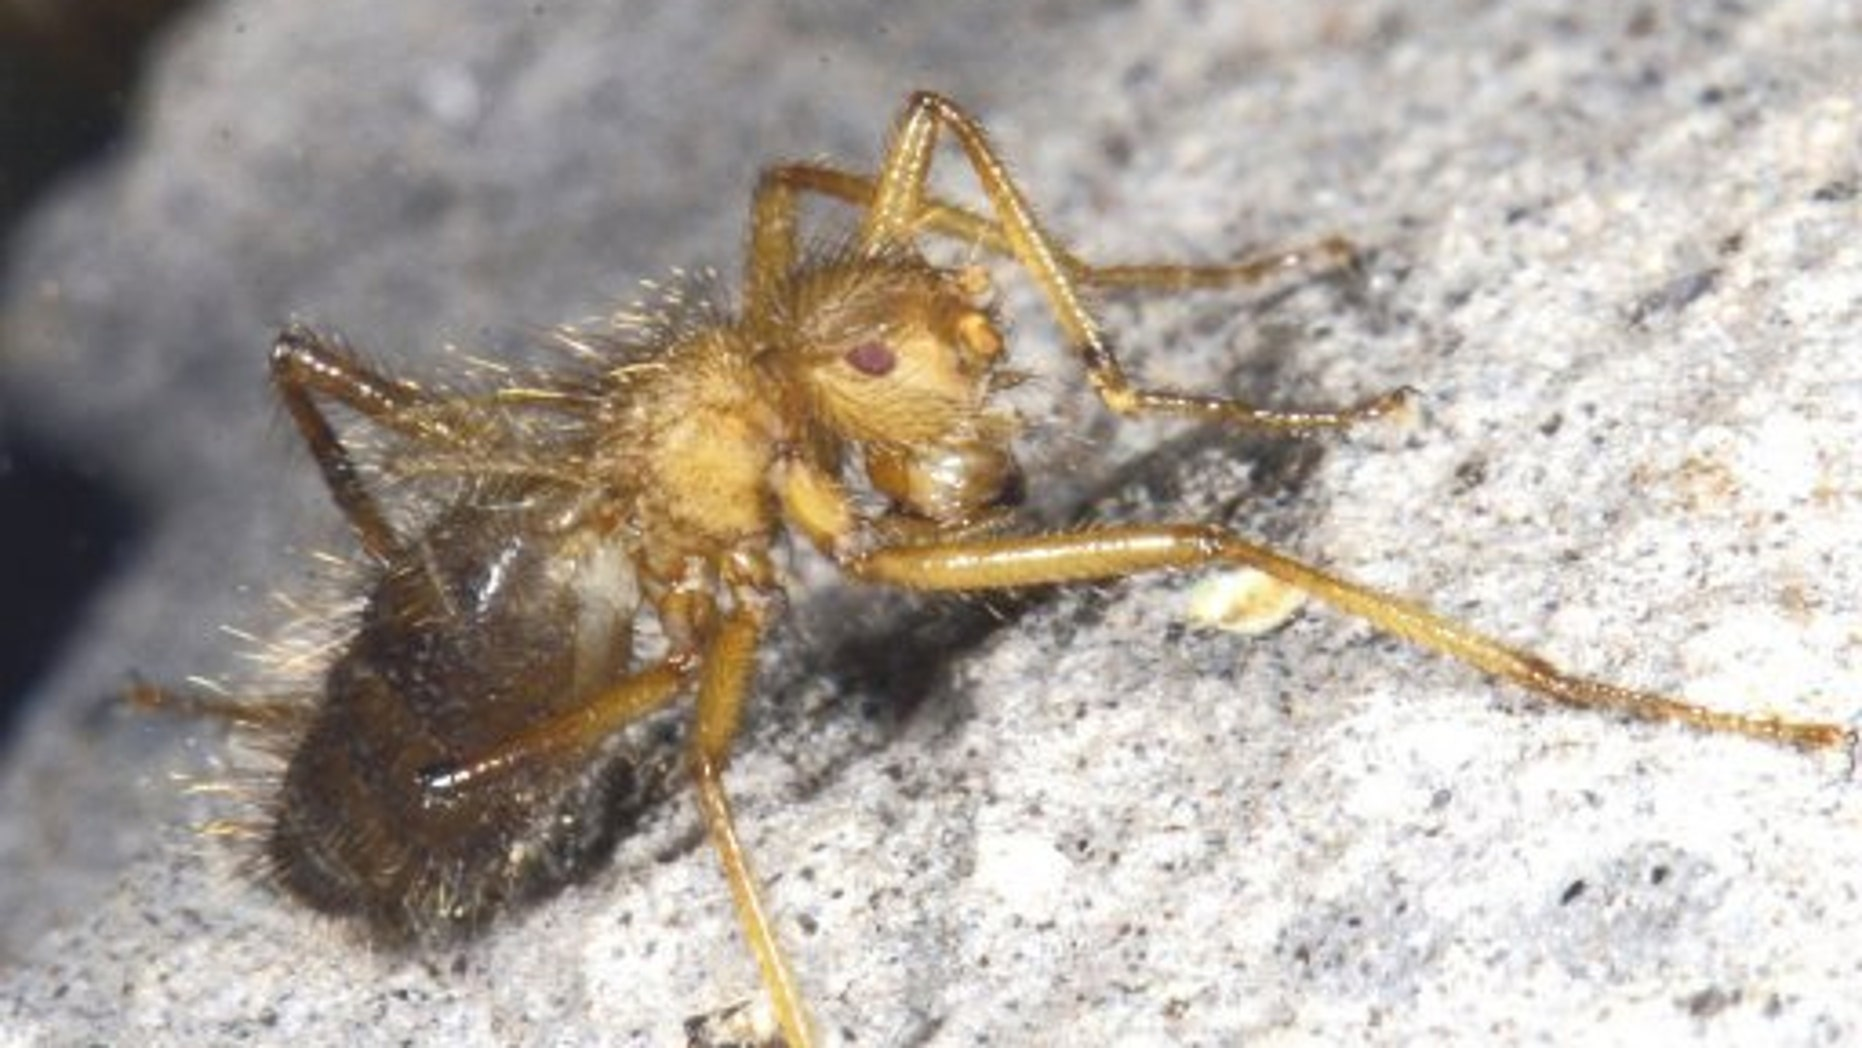 Unable to fly and partial to breeding in bat faeces, the fly is thought to live only in the dank, bat-filled cleft of an isolated rock in the Ukazi Hills.